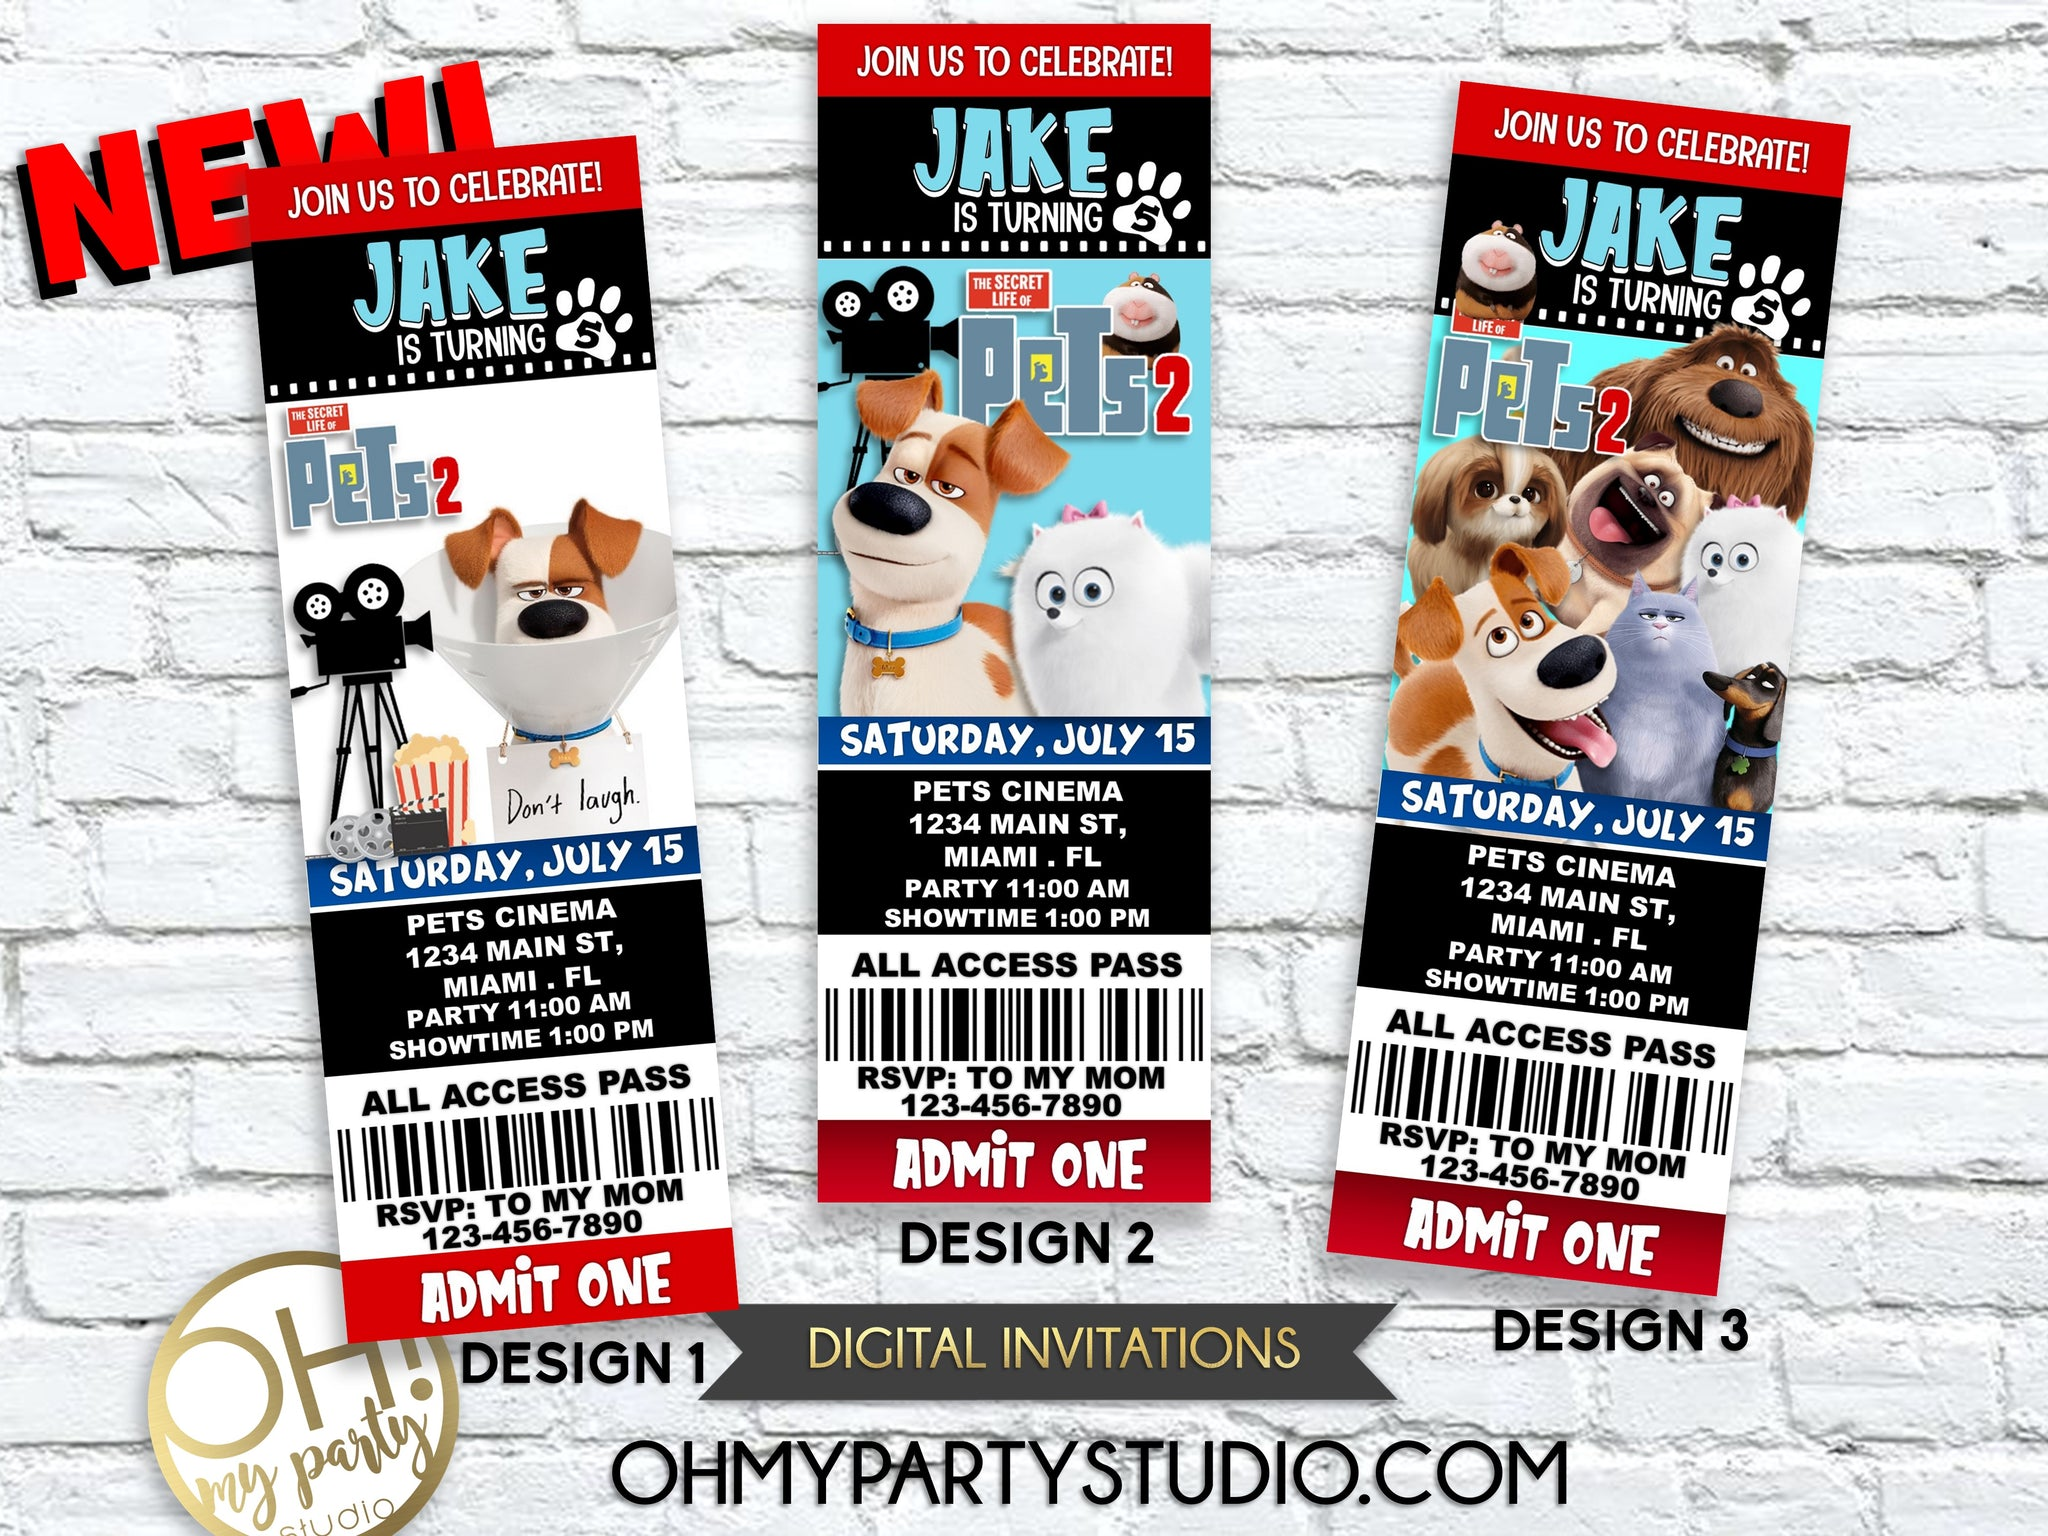 Printable The Secret Life of Pets 2 Birthday Party Invites. Printable The Secret Life of Pets 2 Birthday Party Invites. Secret Life Of Pets 2 Invitation for Birthday Party,Secret Life Of Pets 2 birthday invitation, Secret Life Of Pets 2 invitations, ticket, PETS 2 TICKET INVITATION, PETS 2 INVITATION, PETS 2 INVITE, PETS 2 BIRTHDAY PARTY, PETS 2 PARTY, PETS 2 BIRTHDAY, PETS 2 CARD, PETS 2 PARTY PRINTABLES